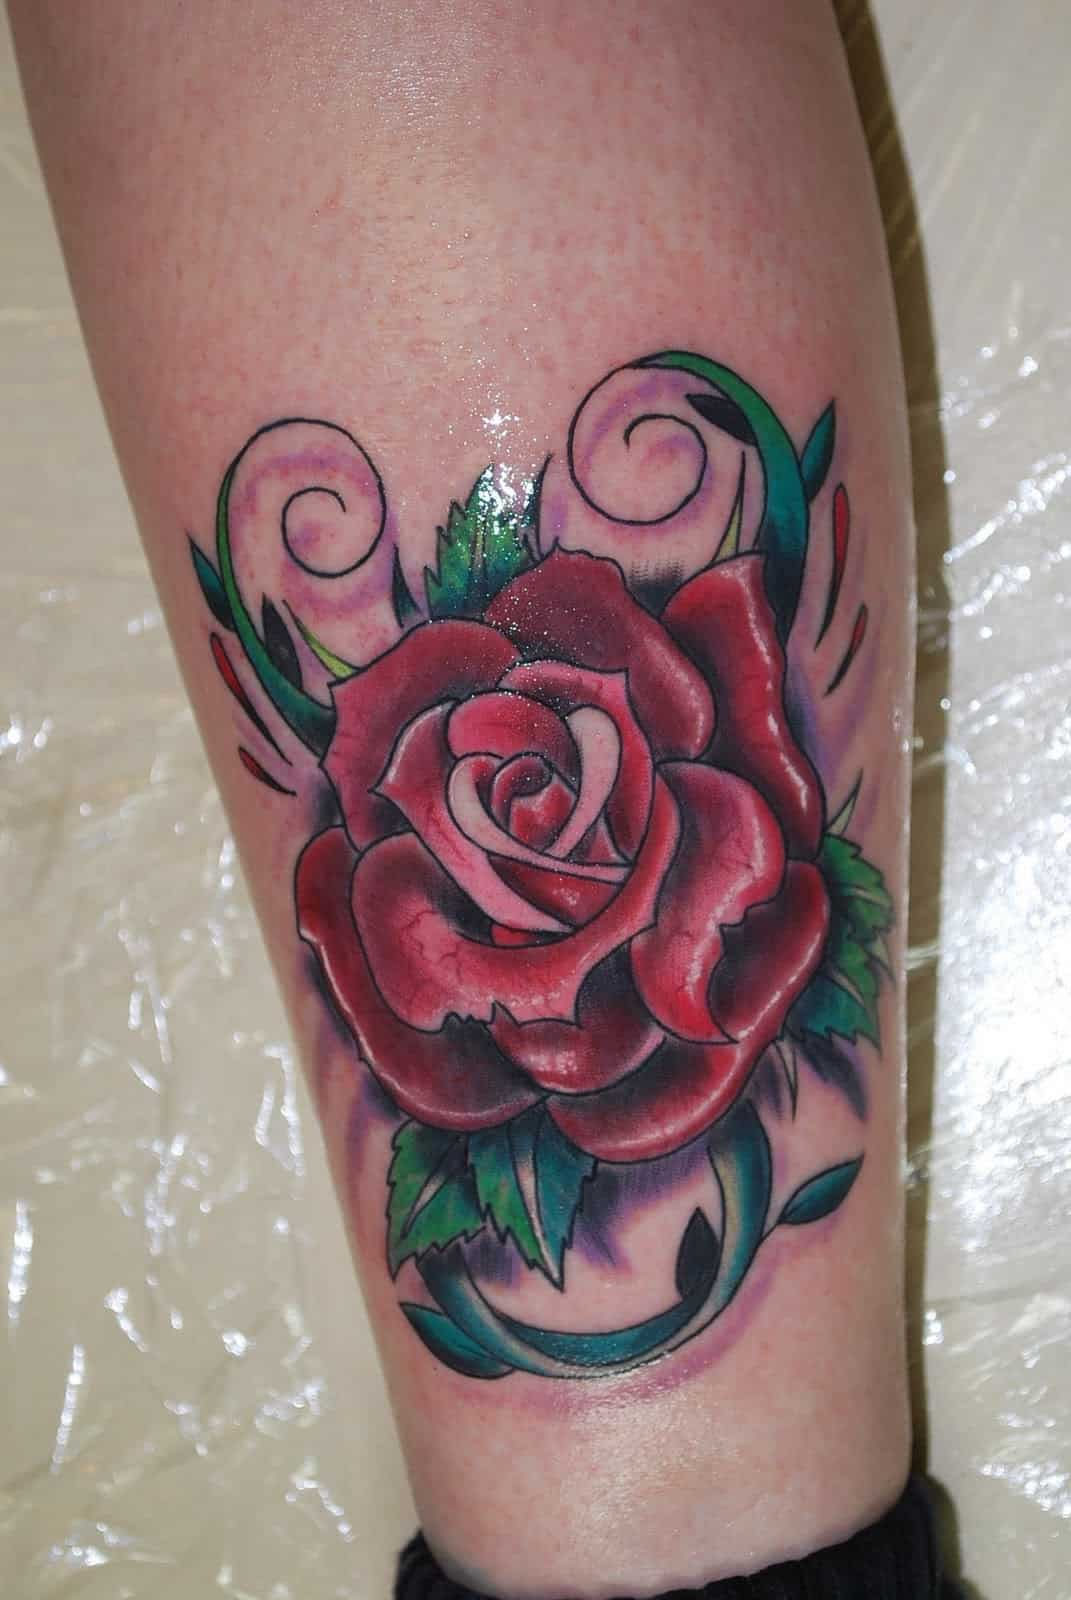 among the floral tattoos rose tattoos are probably the most popular ...